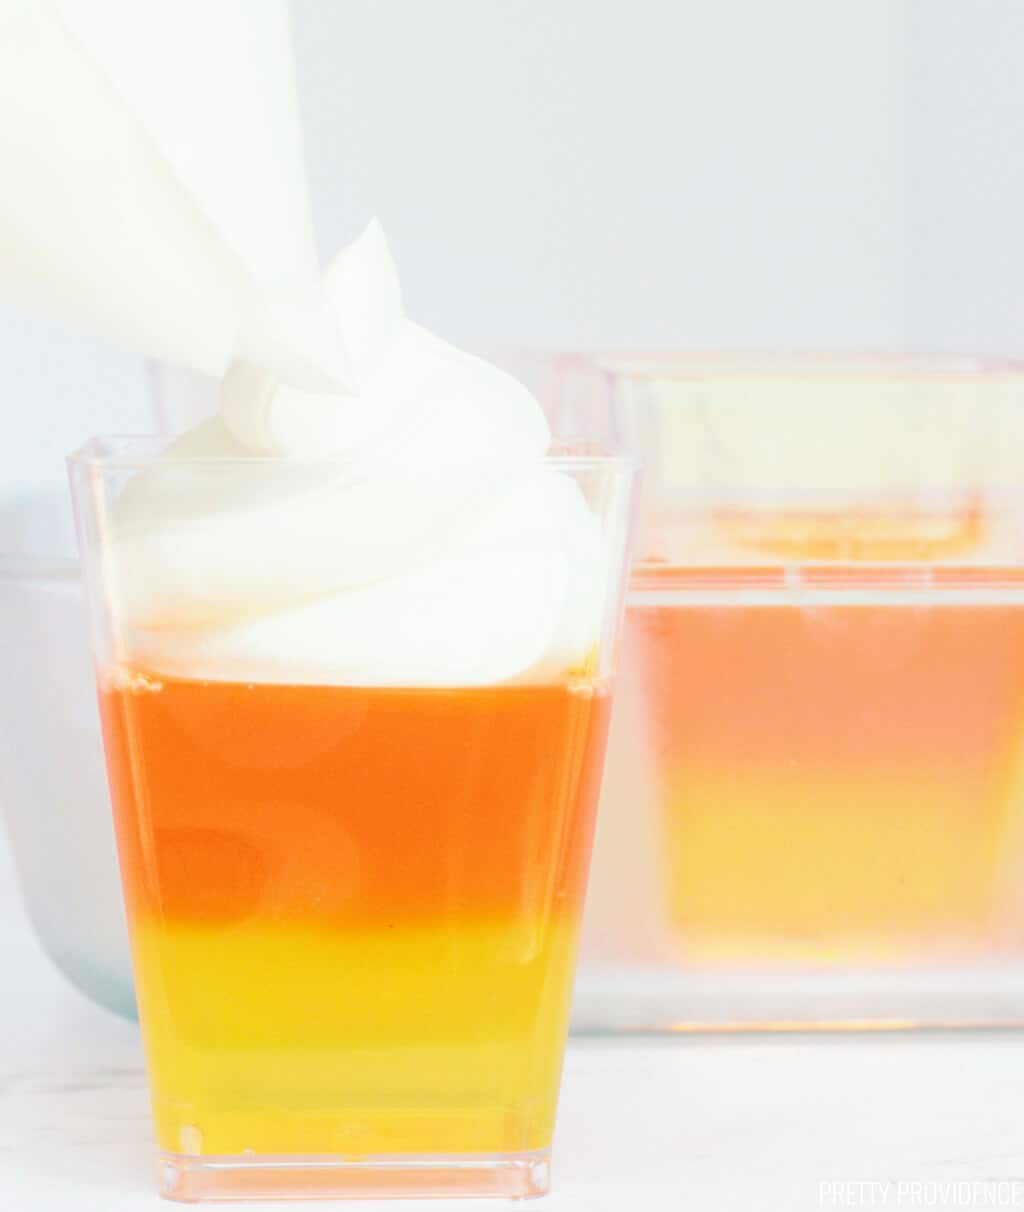 Candy corn Jello with yellow layer, orange layer on top of that and then cool whip being piped onto the top.